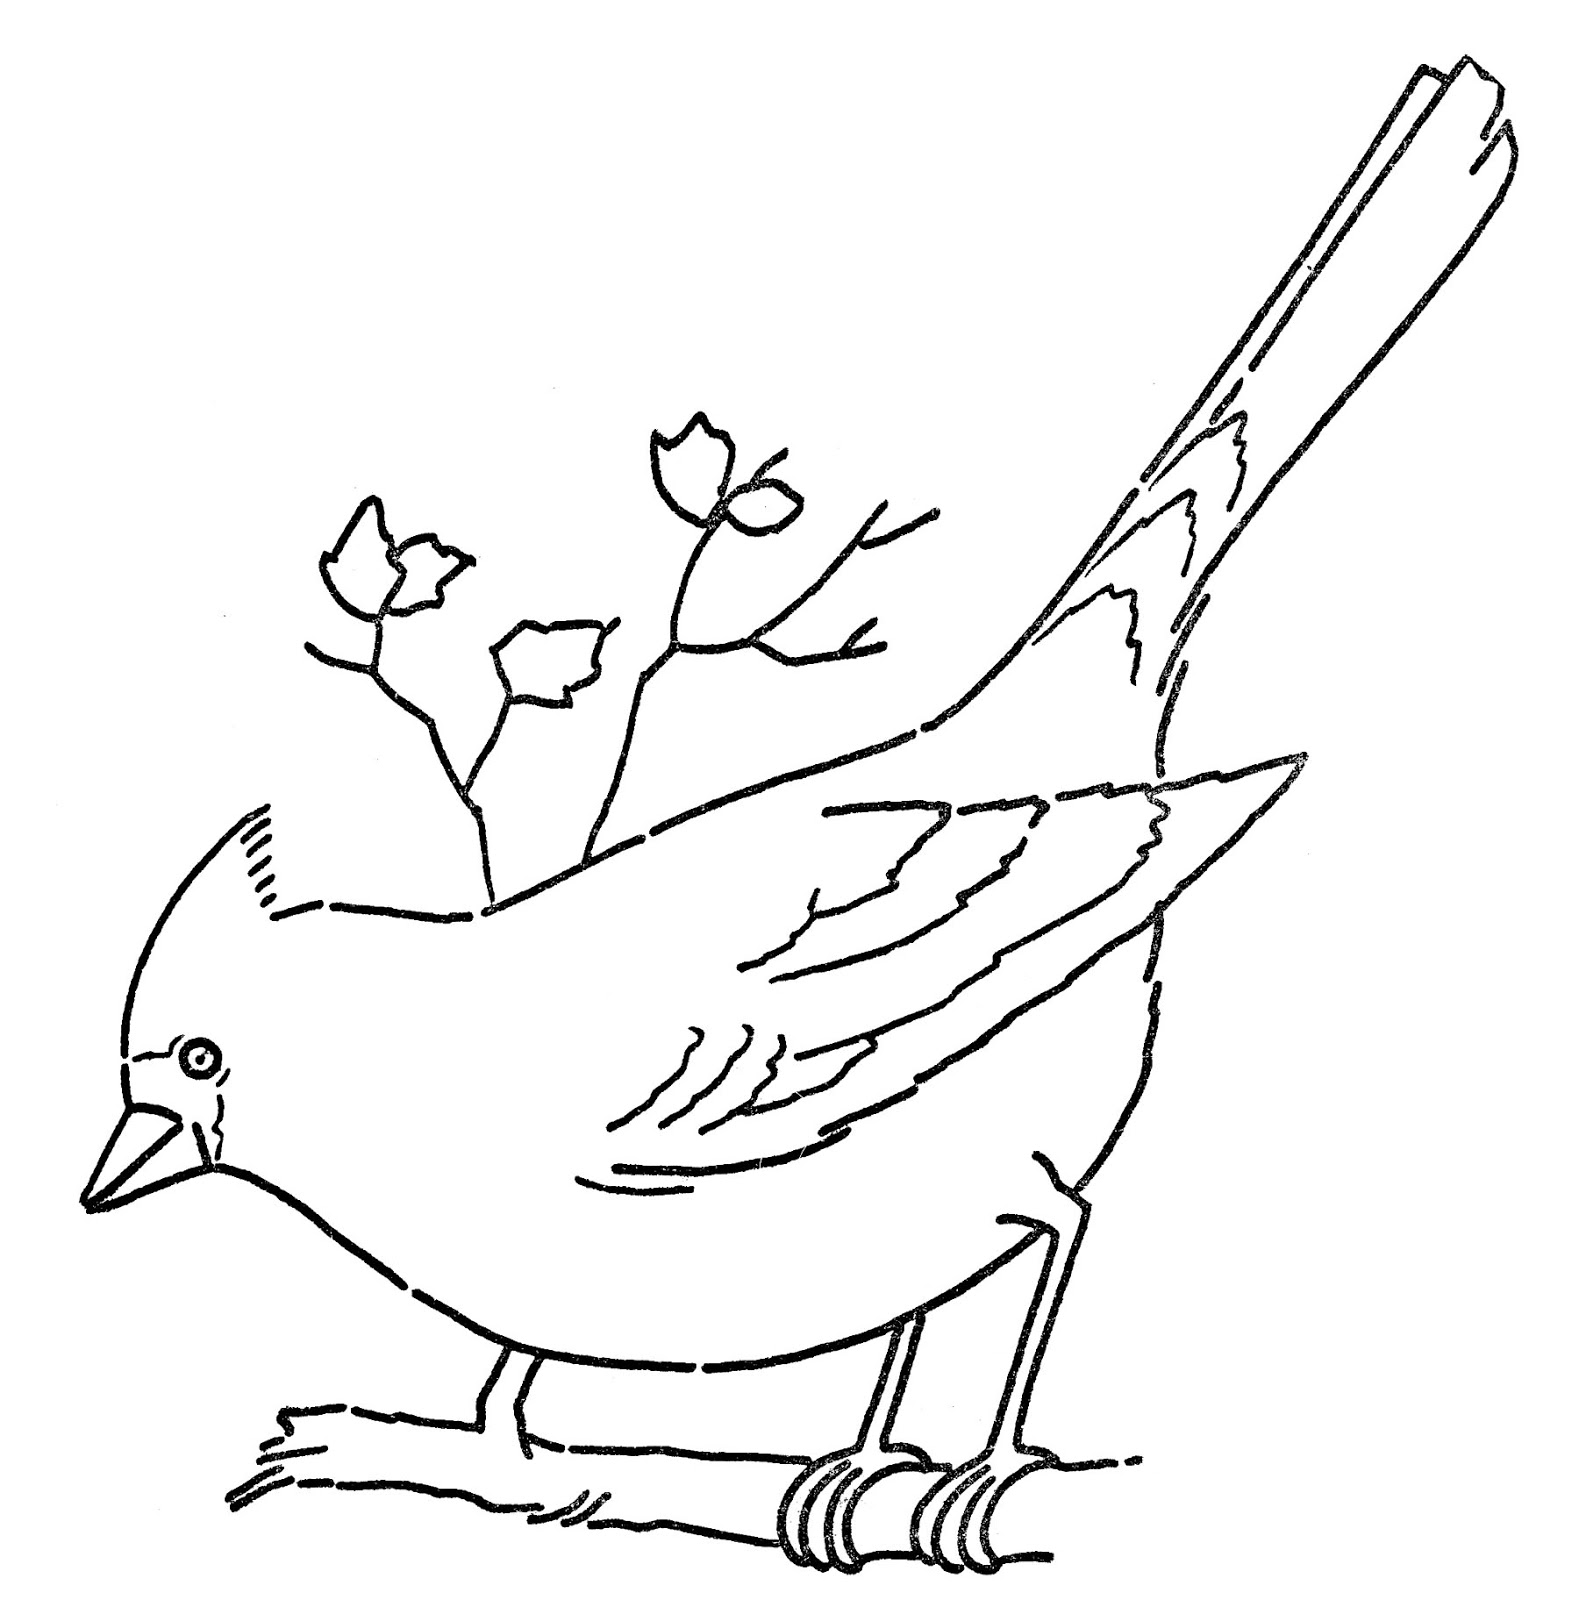 Line Art Work : Line art coloring page cardinal on branch the